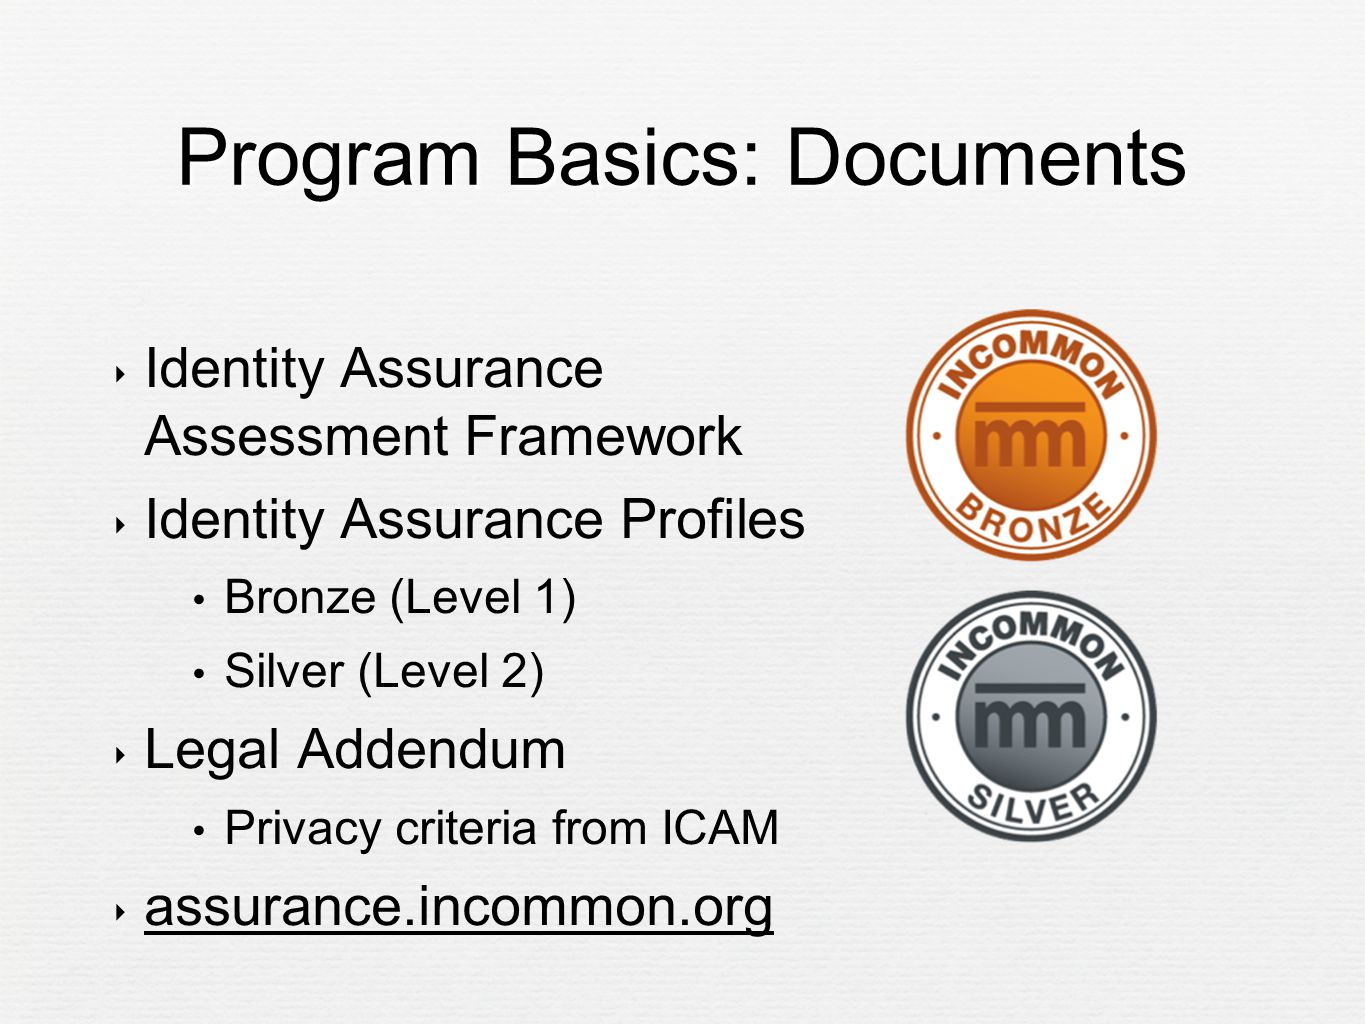 Program Basics: Documents ‣ Identity Assurance Assessment Framework ‣ Identity Assurance Profiles Bronze (Level 1) Silver (Level 2) ‣ Legal Addendum Privacy criteria from ICAM ‣ assurance.incommon.org